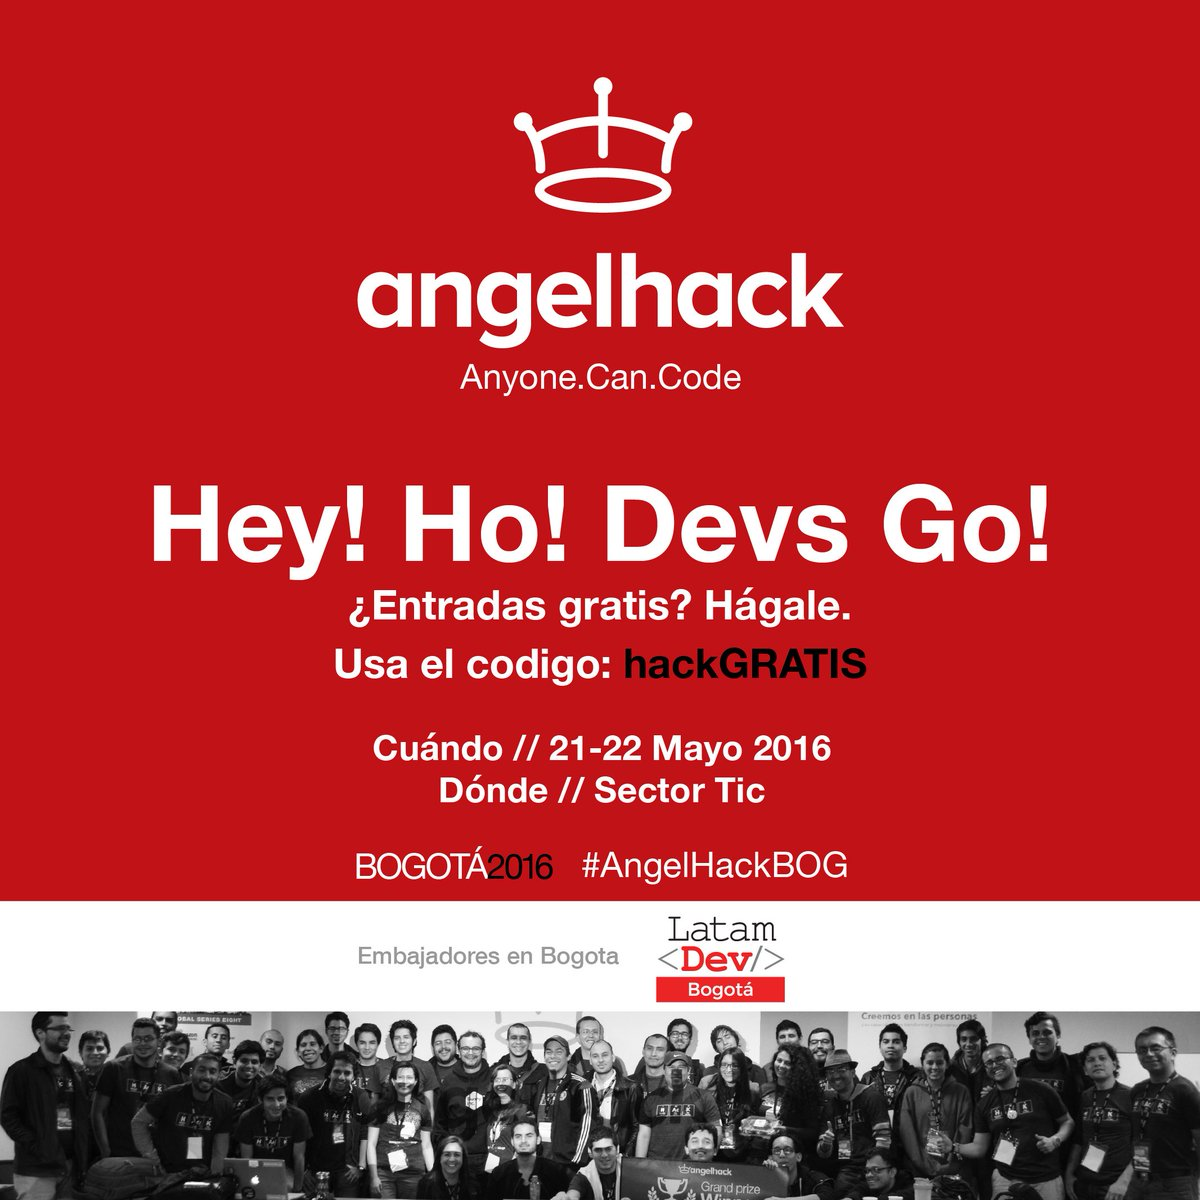 "¡Hey Devs! @AngelHack #Bogota se vino con todo este fds ¡entradas gratis! https://t.co/xxCud7PEc9 Usa: ""hackGRATIS"" https://t.co/ObEi4vWA3H"